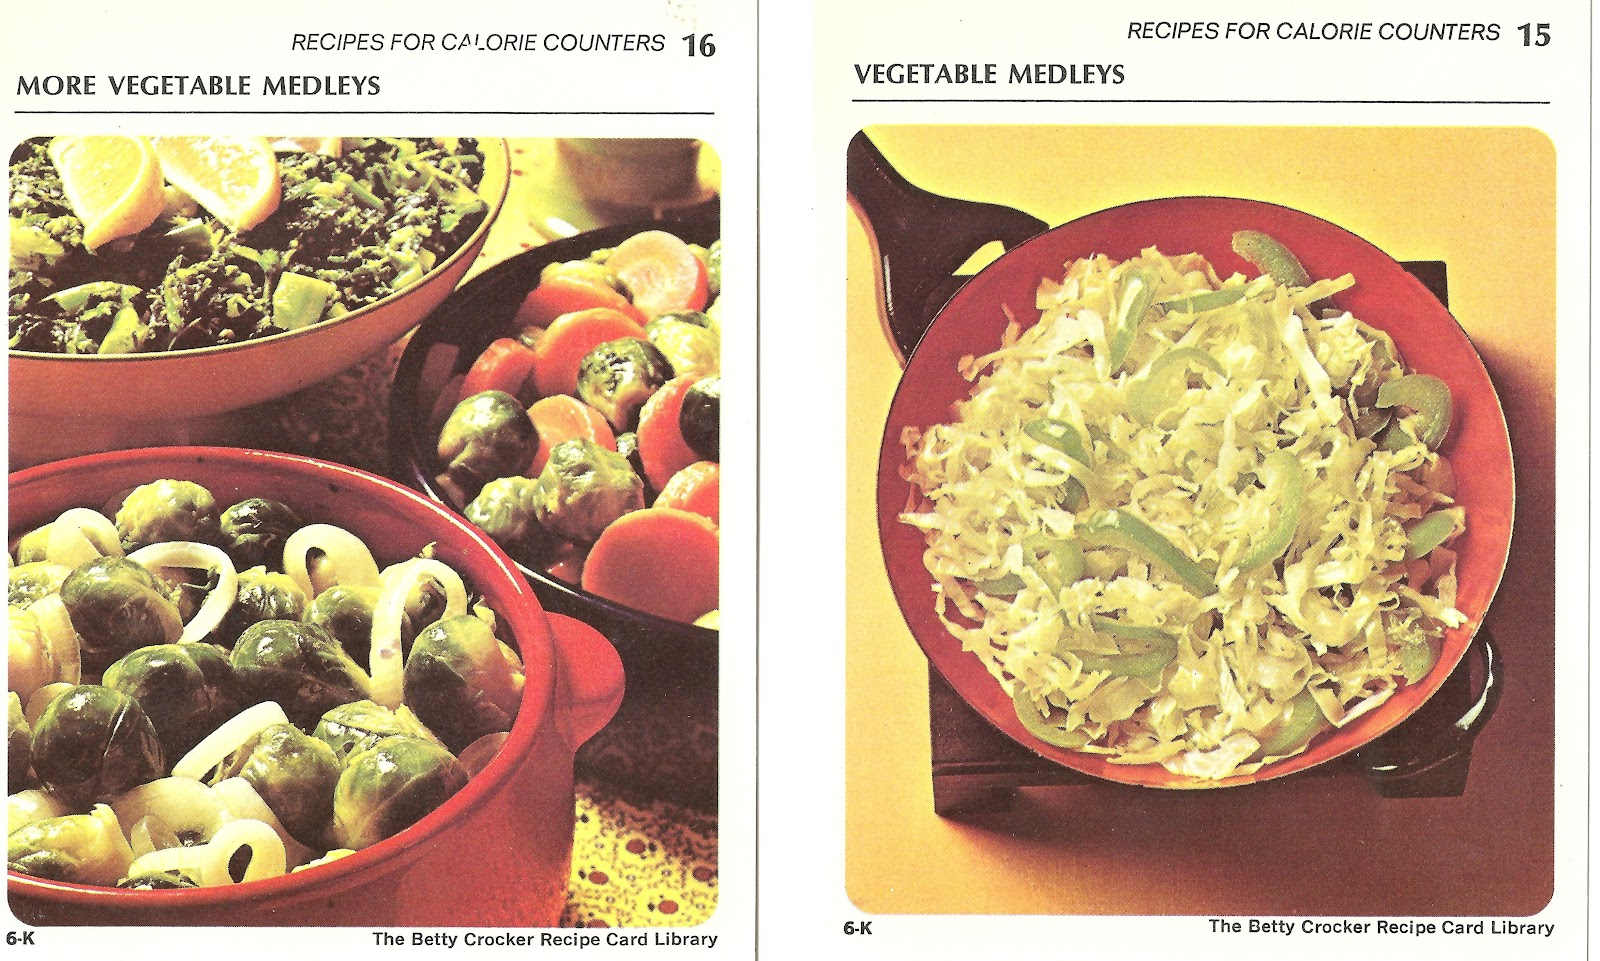 Bad and ugly of retro food who can forget the recipe cards the medley here is something somber depressing and full of self loathing that you got to the point you were using betty crockers recipe cards for lighter forumfinder Choice Image